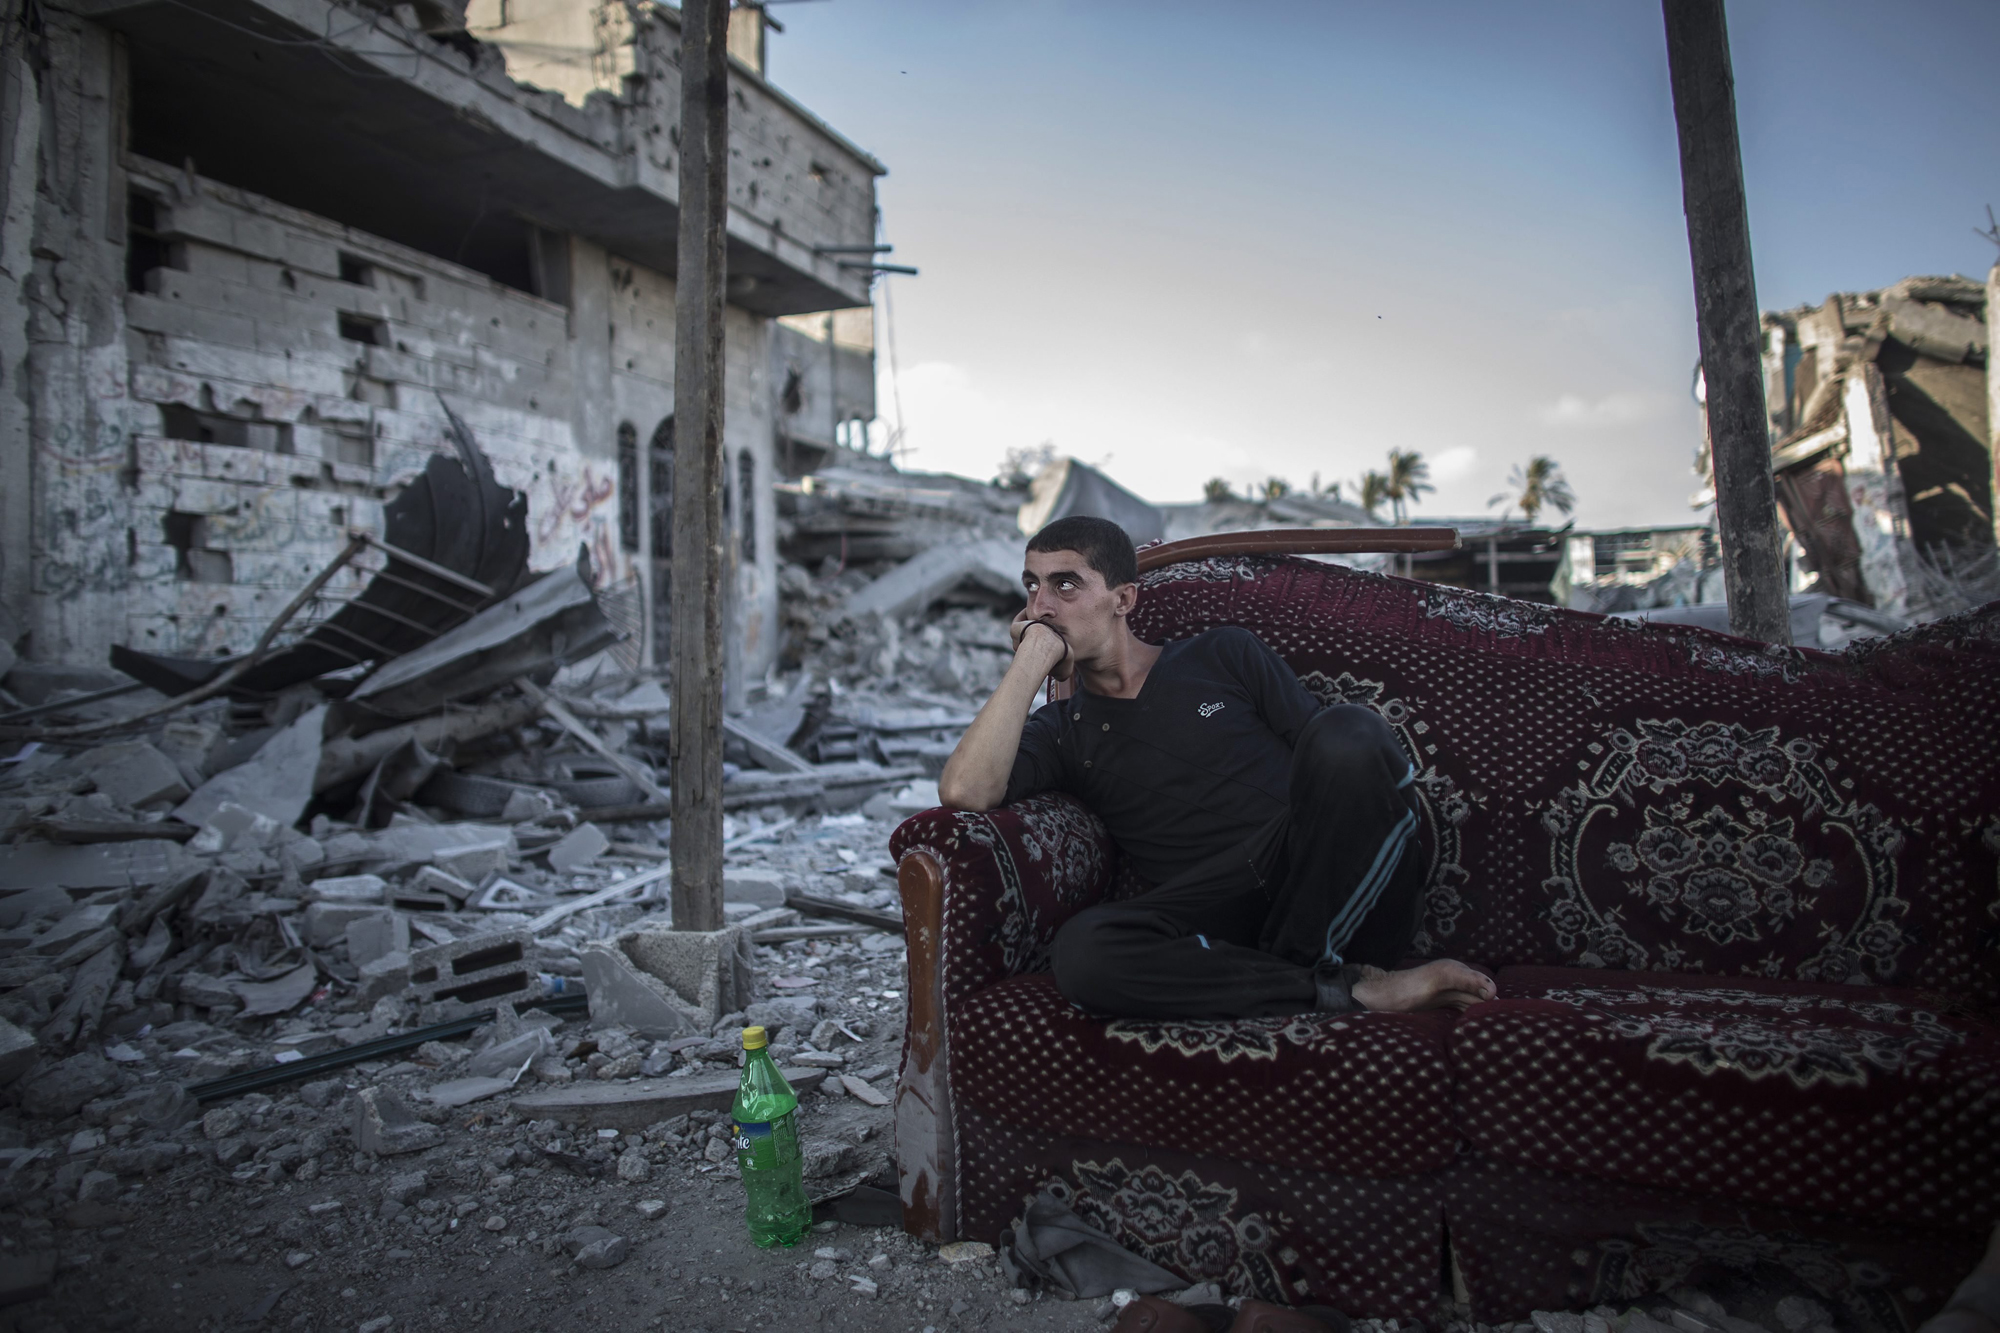 A Palestinian sits on a salvaged sofa outside his destroyed home in the Shujayeh neighborhood, east of Gaza City, Aug. 6, 2014.